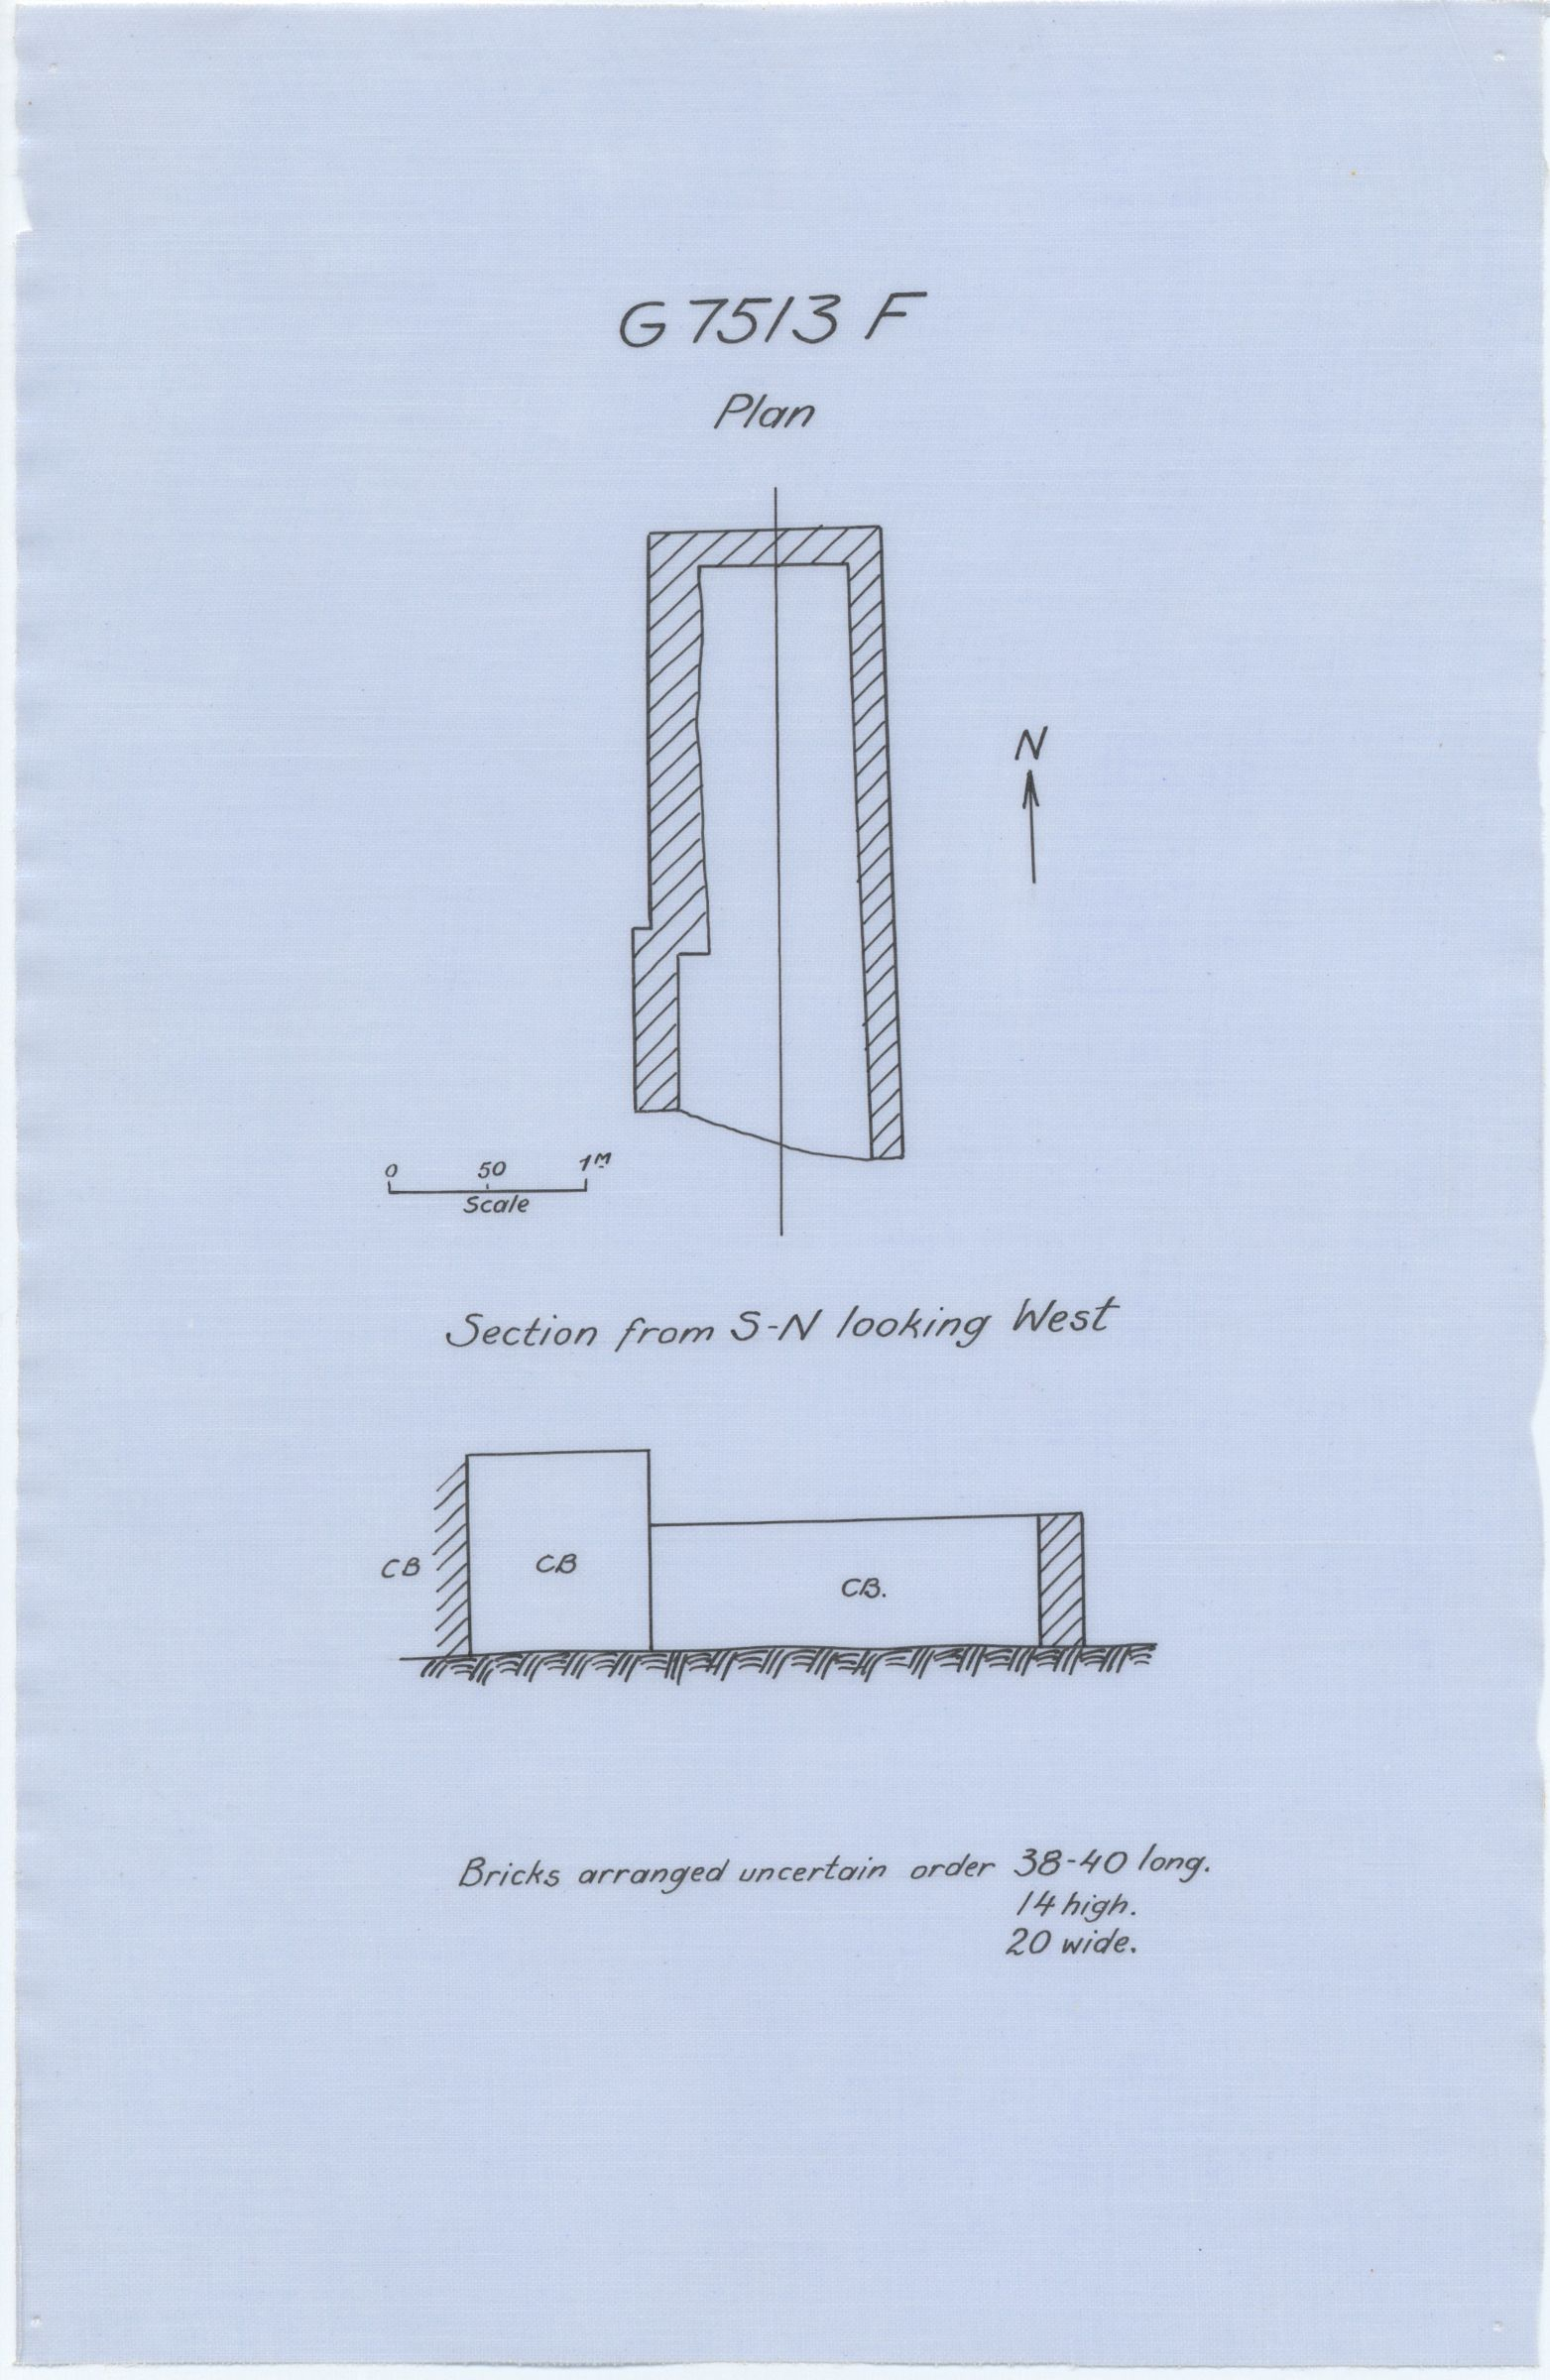 Maps and plans: G 7513, Shaft F